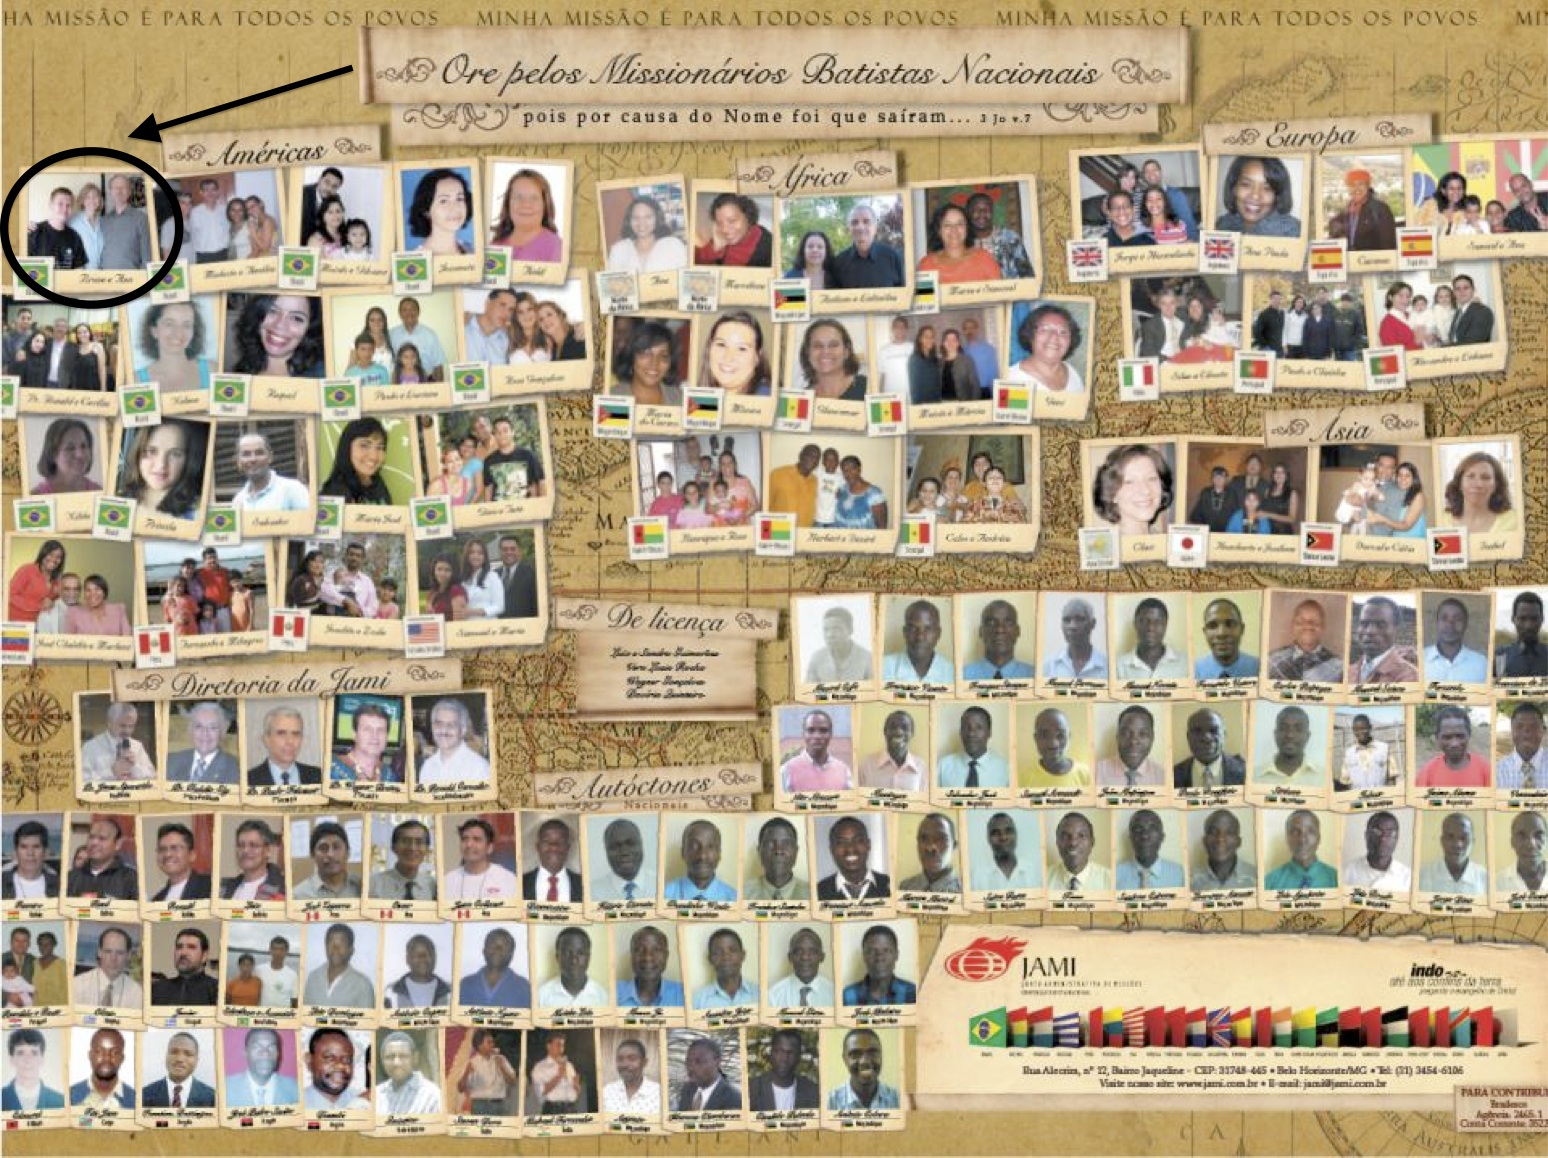 Our family photo is in the top left hand corner of the JAMI missionary poster. Helio uses this poster to pray for missionaries around the world.